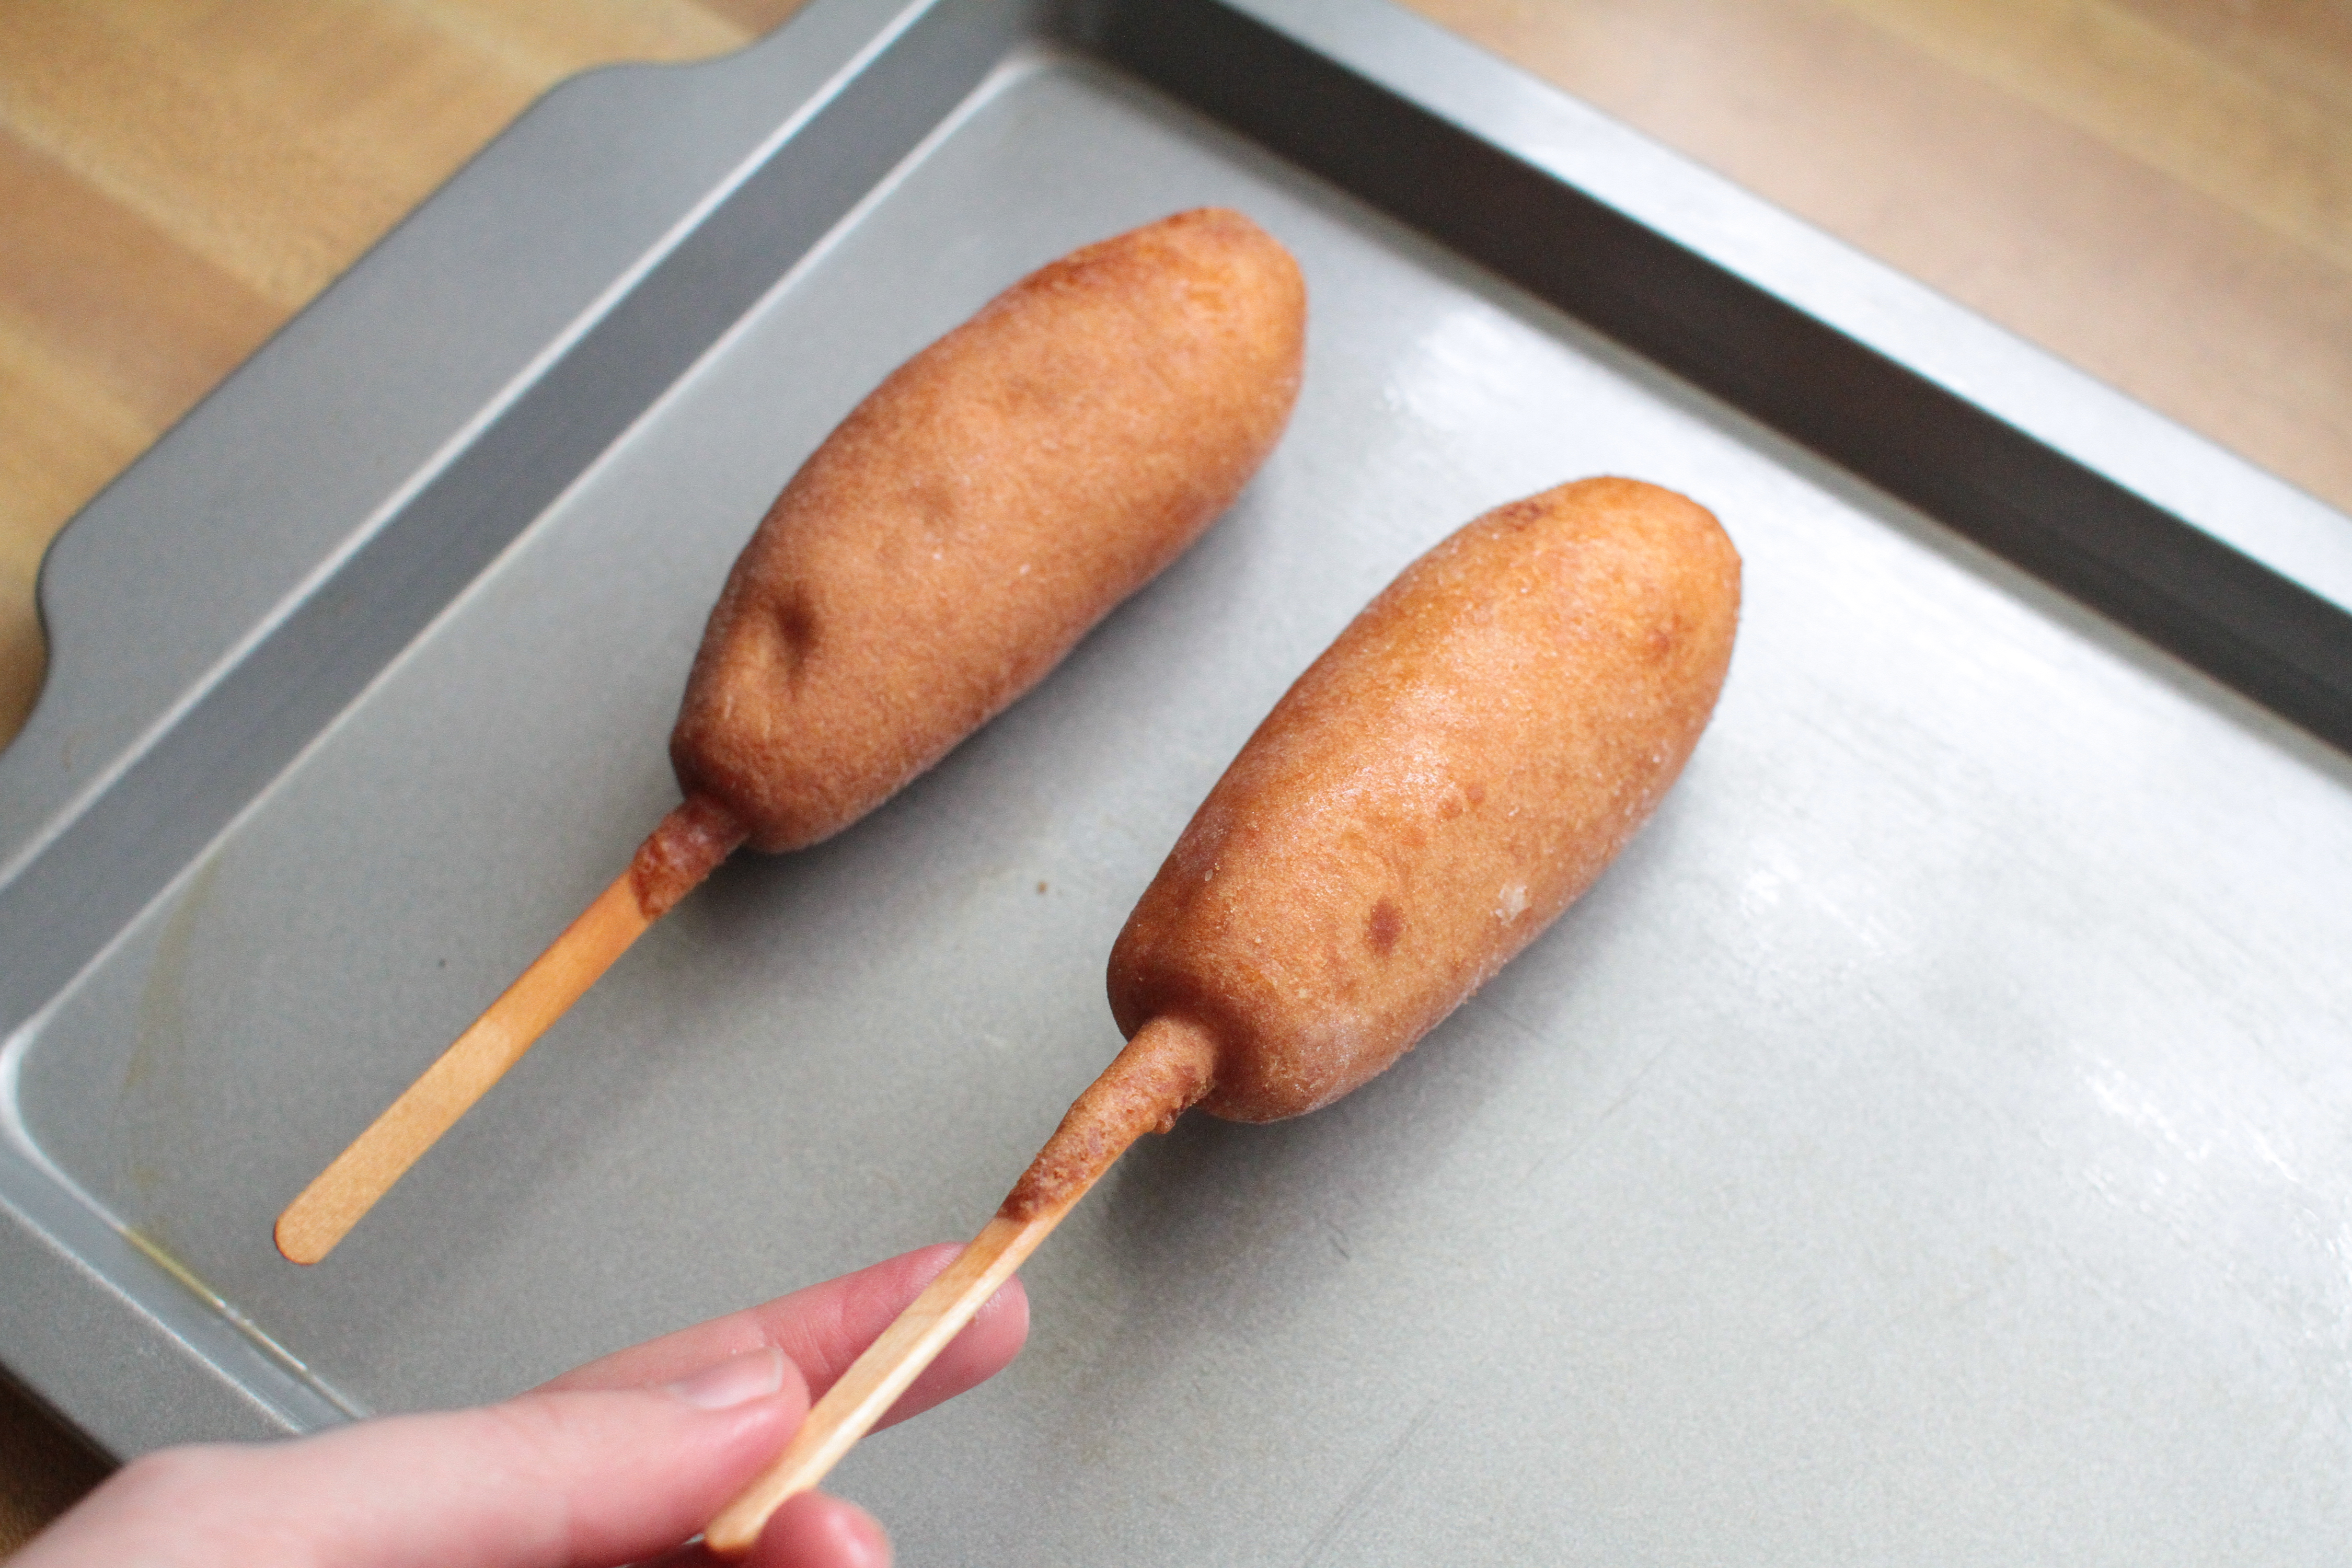 how to make a corn dog crispy in the microwave